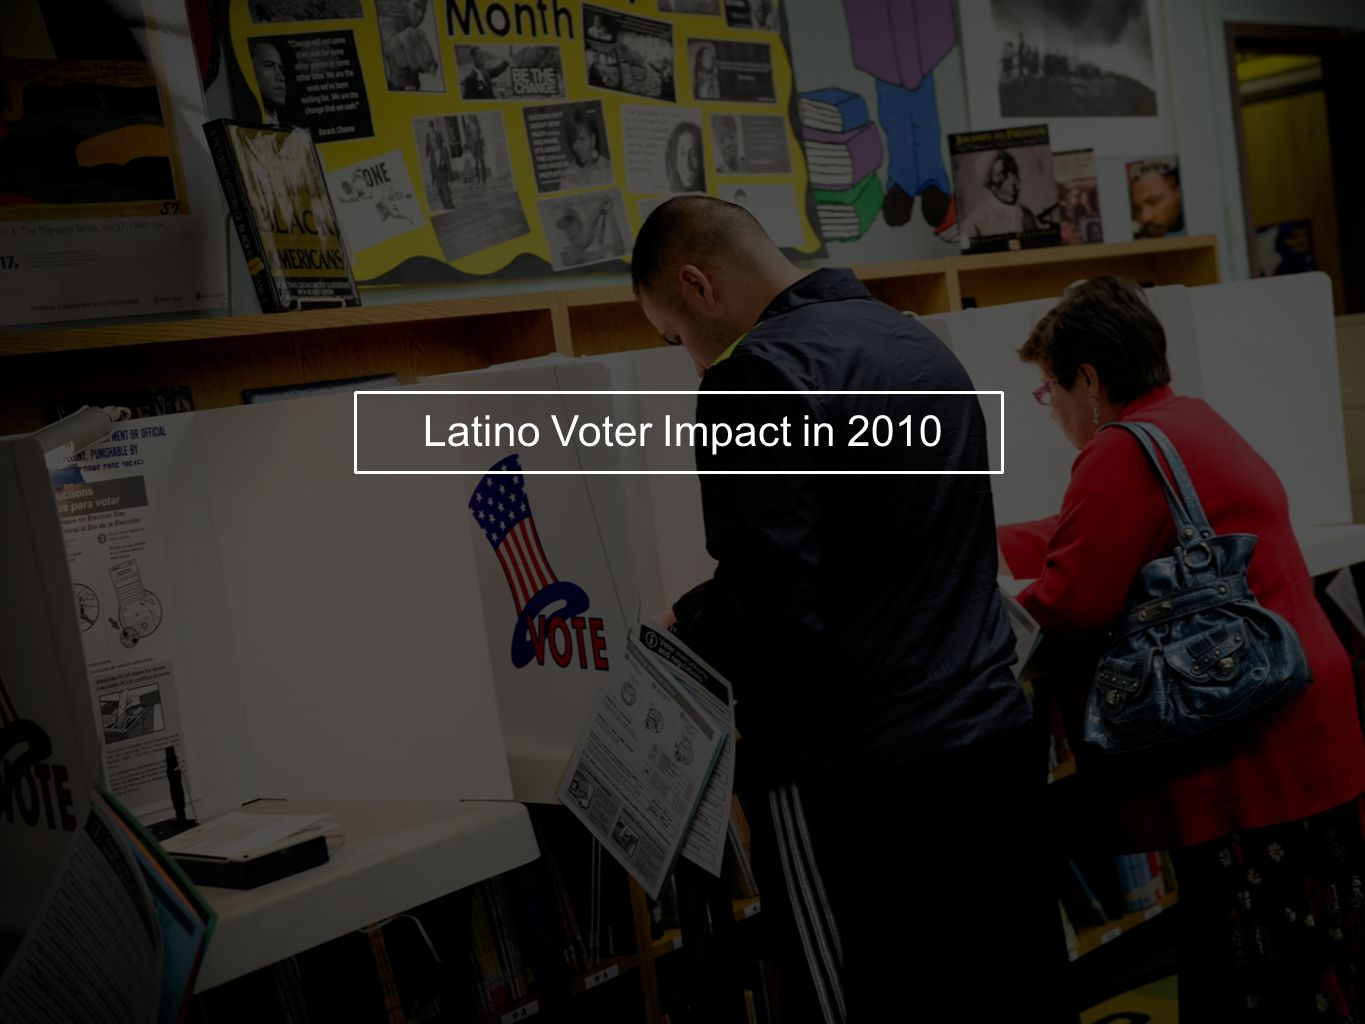 Latino voters deliver victories to U.S.